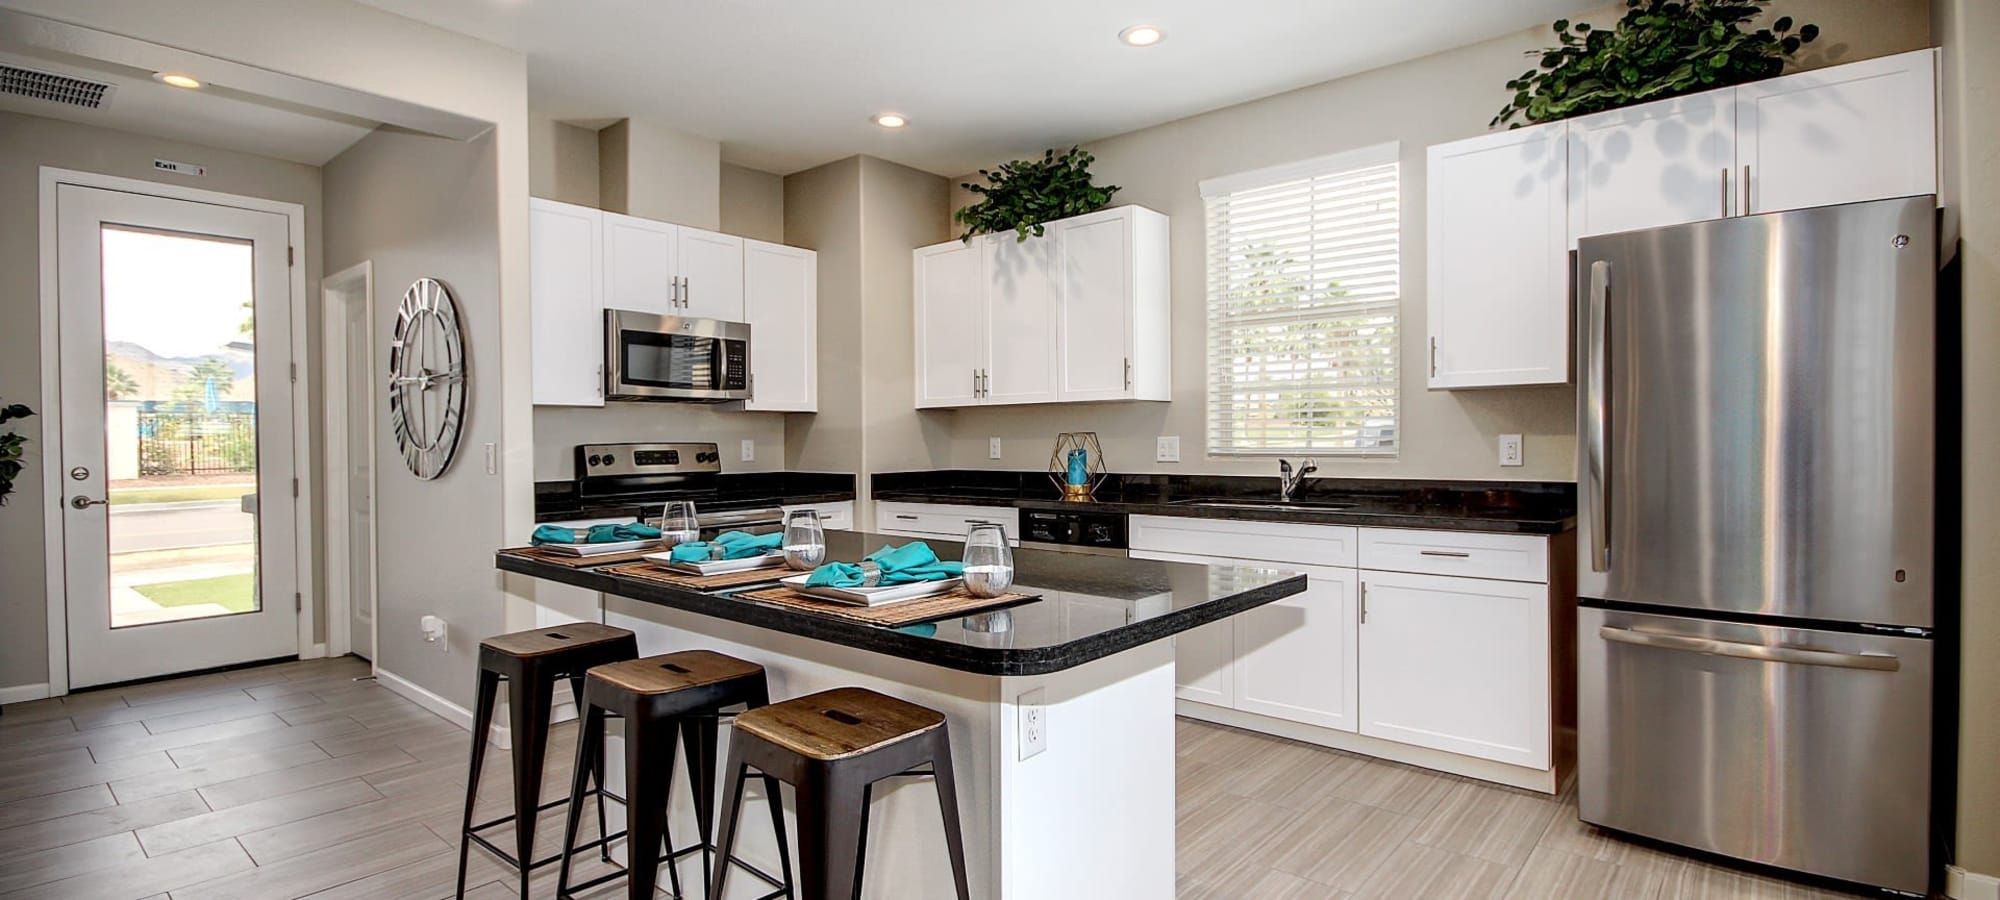 Modern kitchen and dining area at BB Living at Val Vista in Gilbert, Arizona